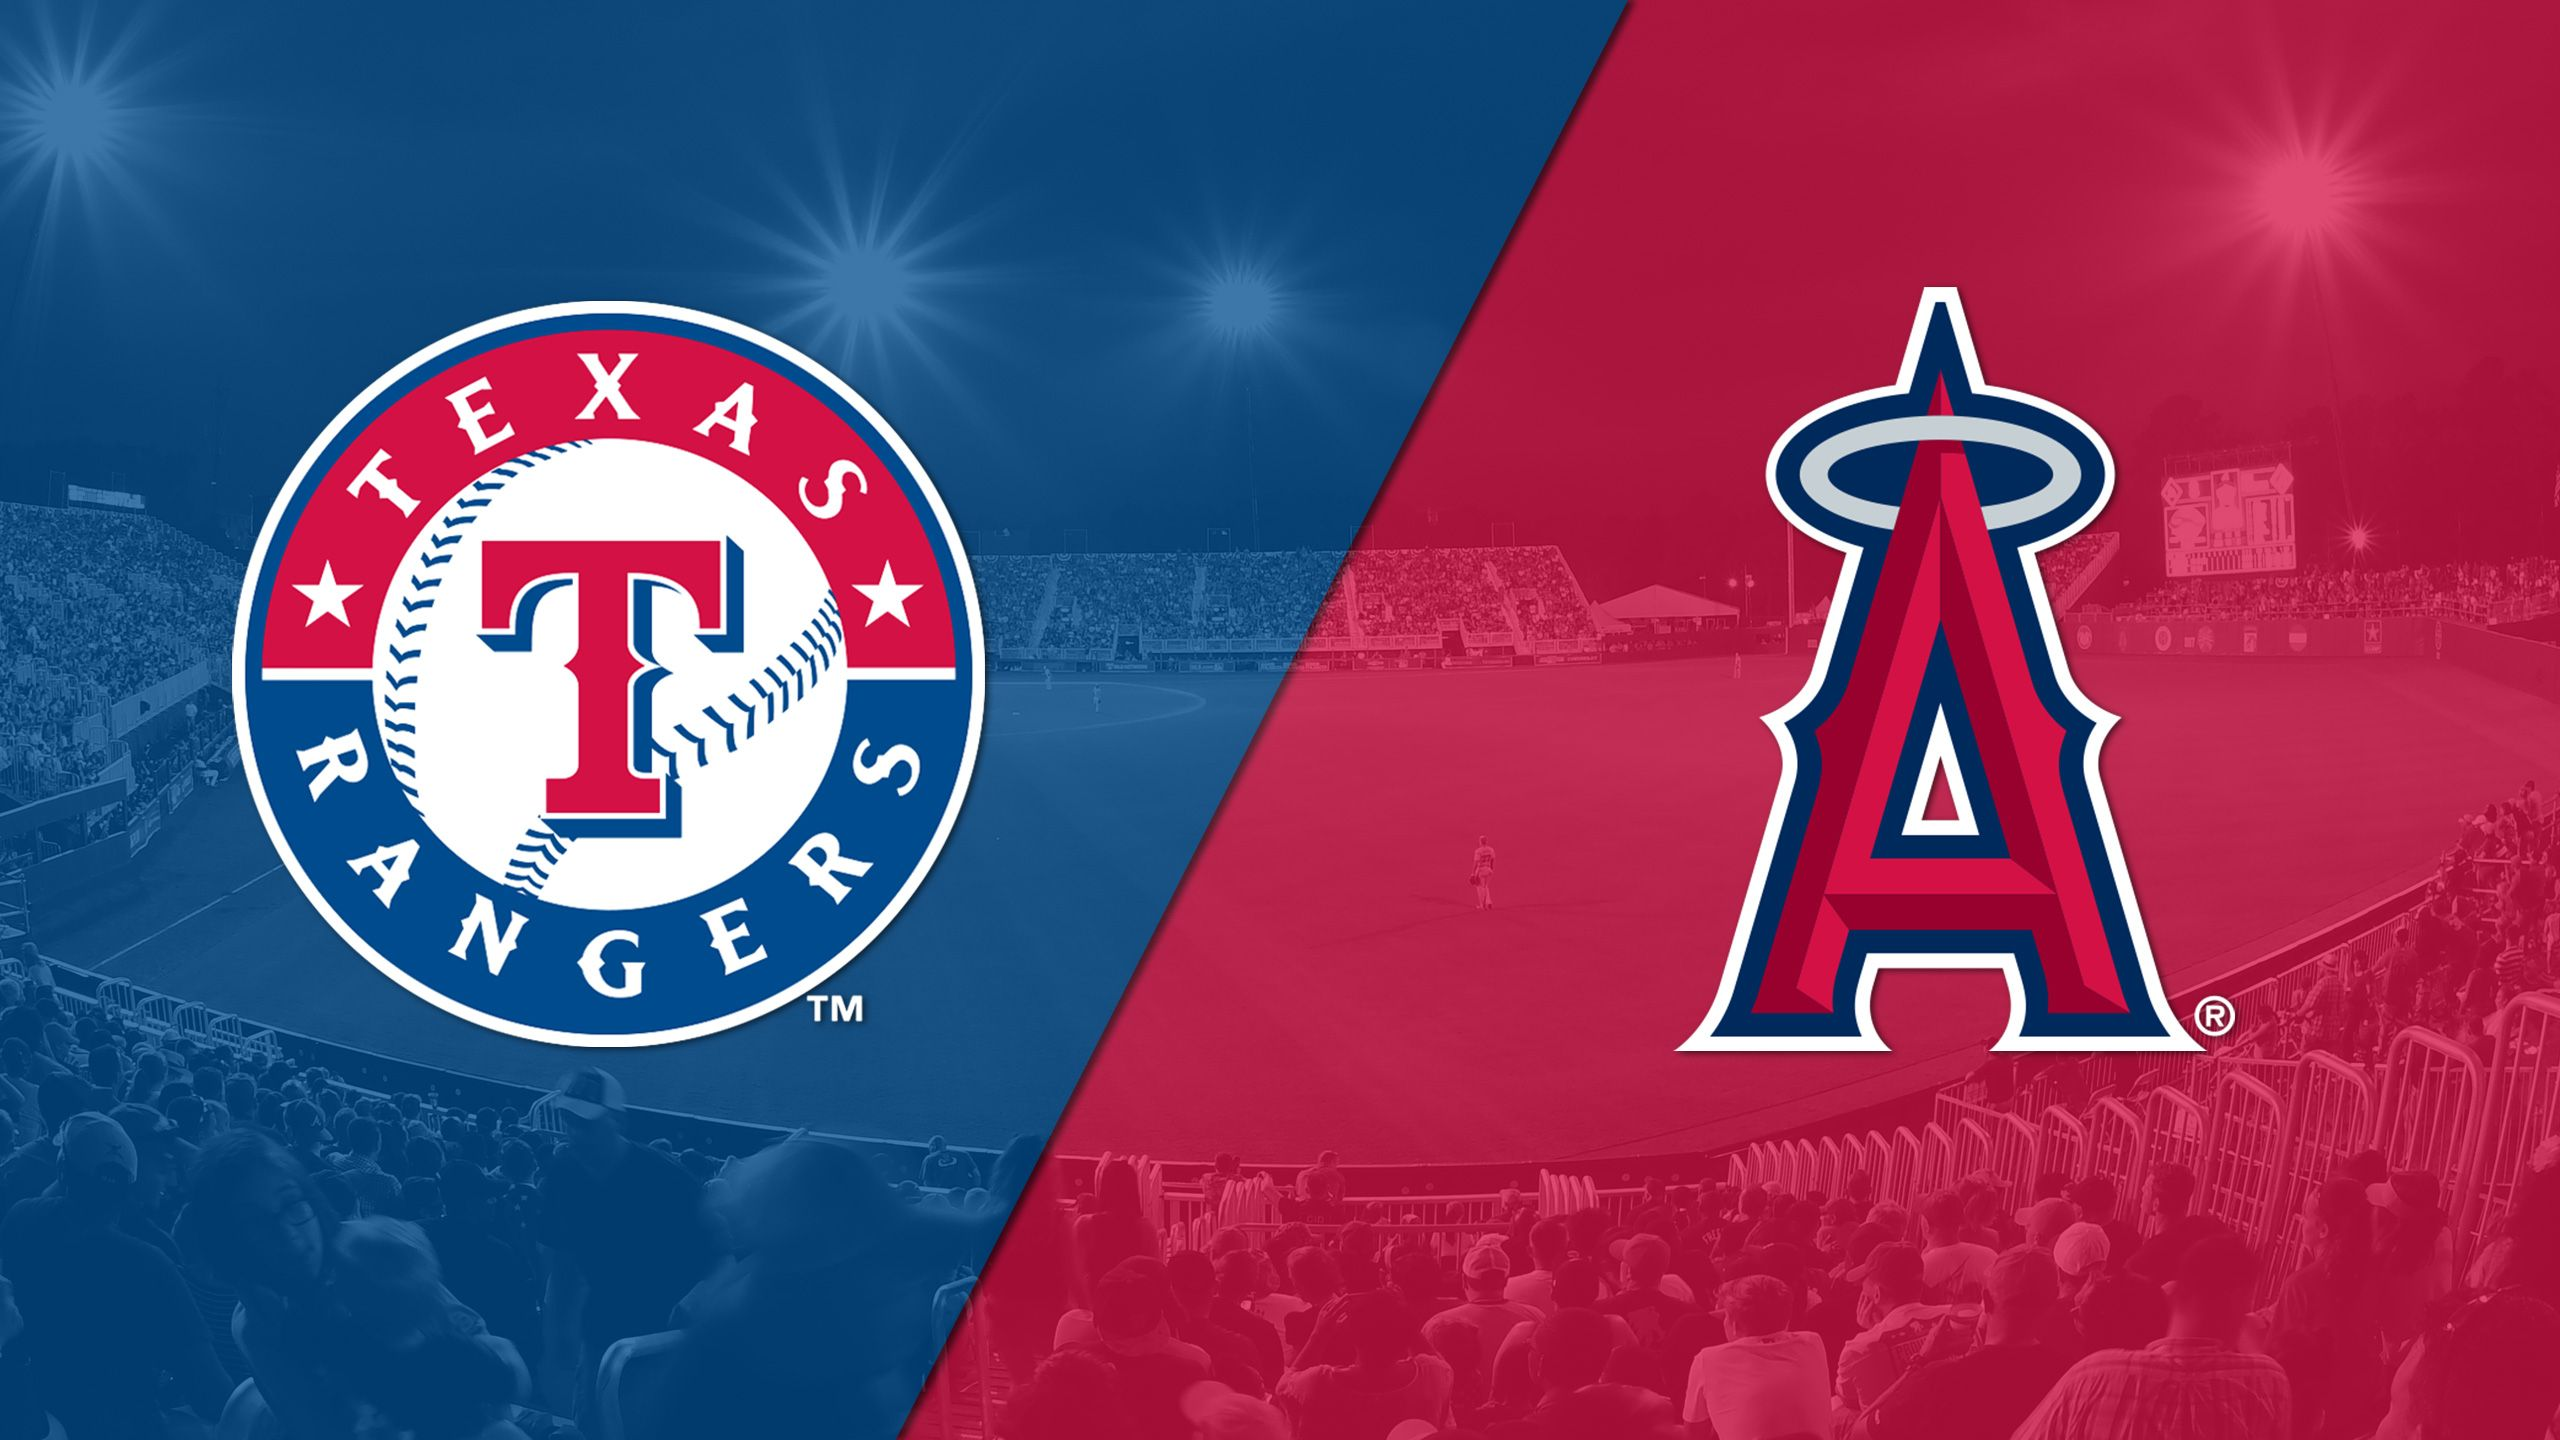 Texas Rangers vs. Los Angeles Angels of Anaheim (re-air)